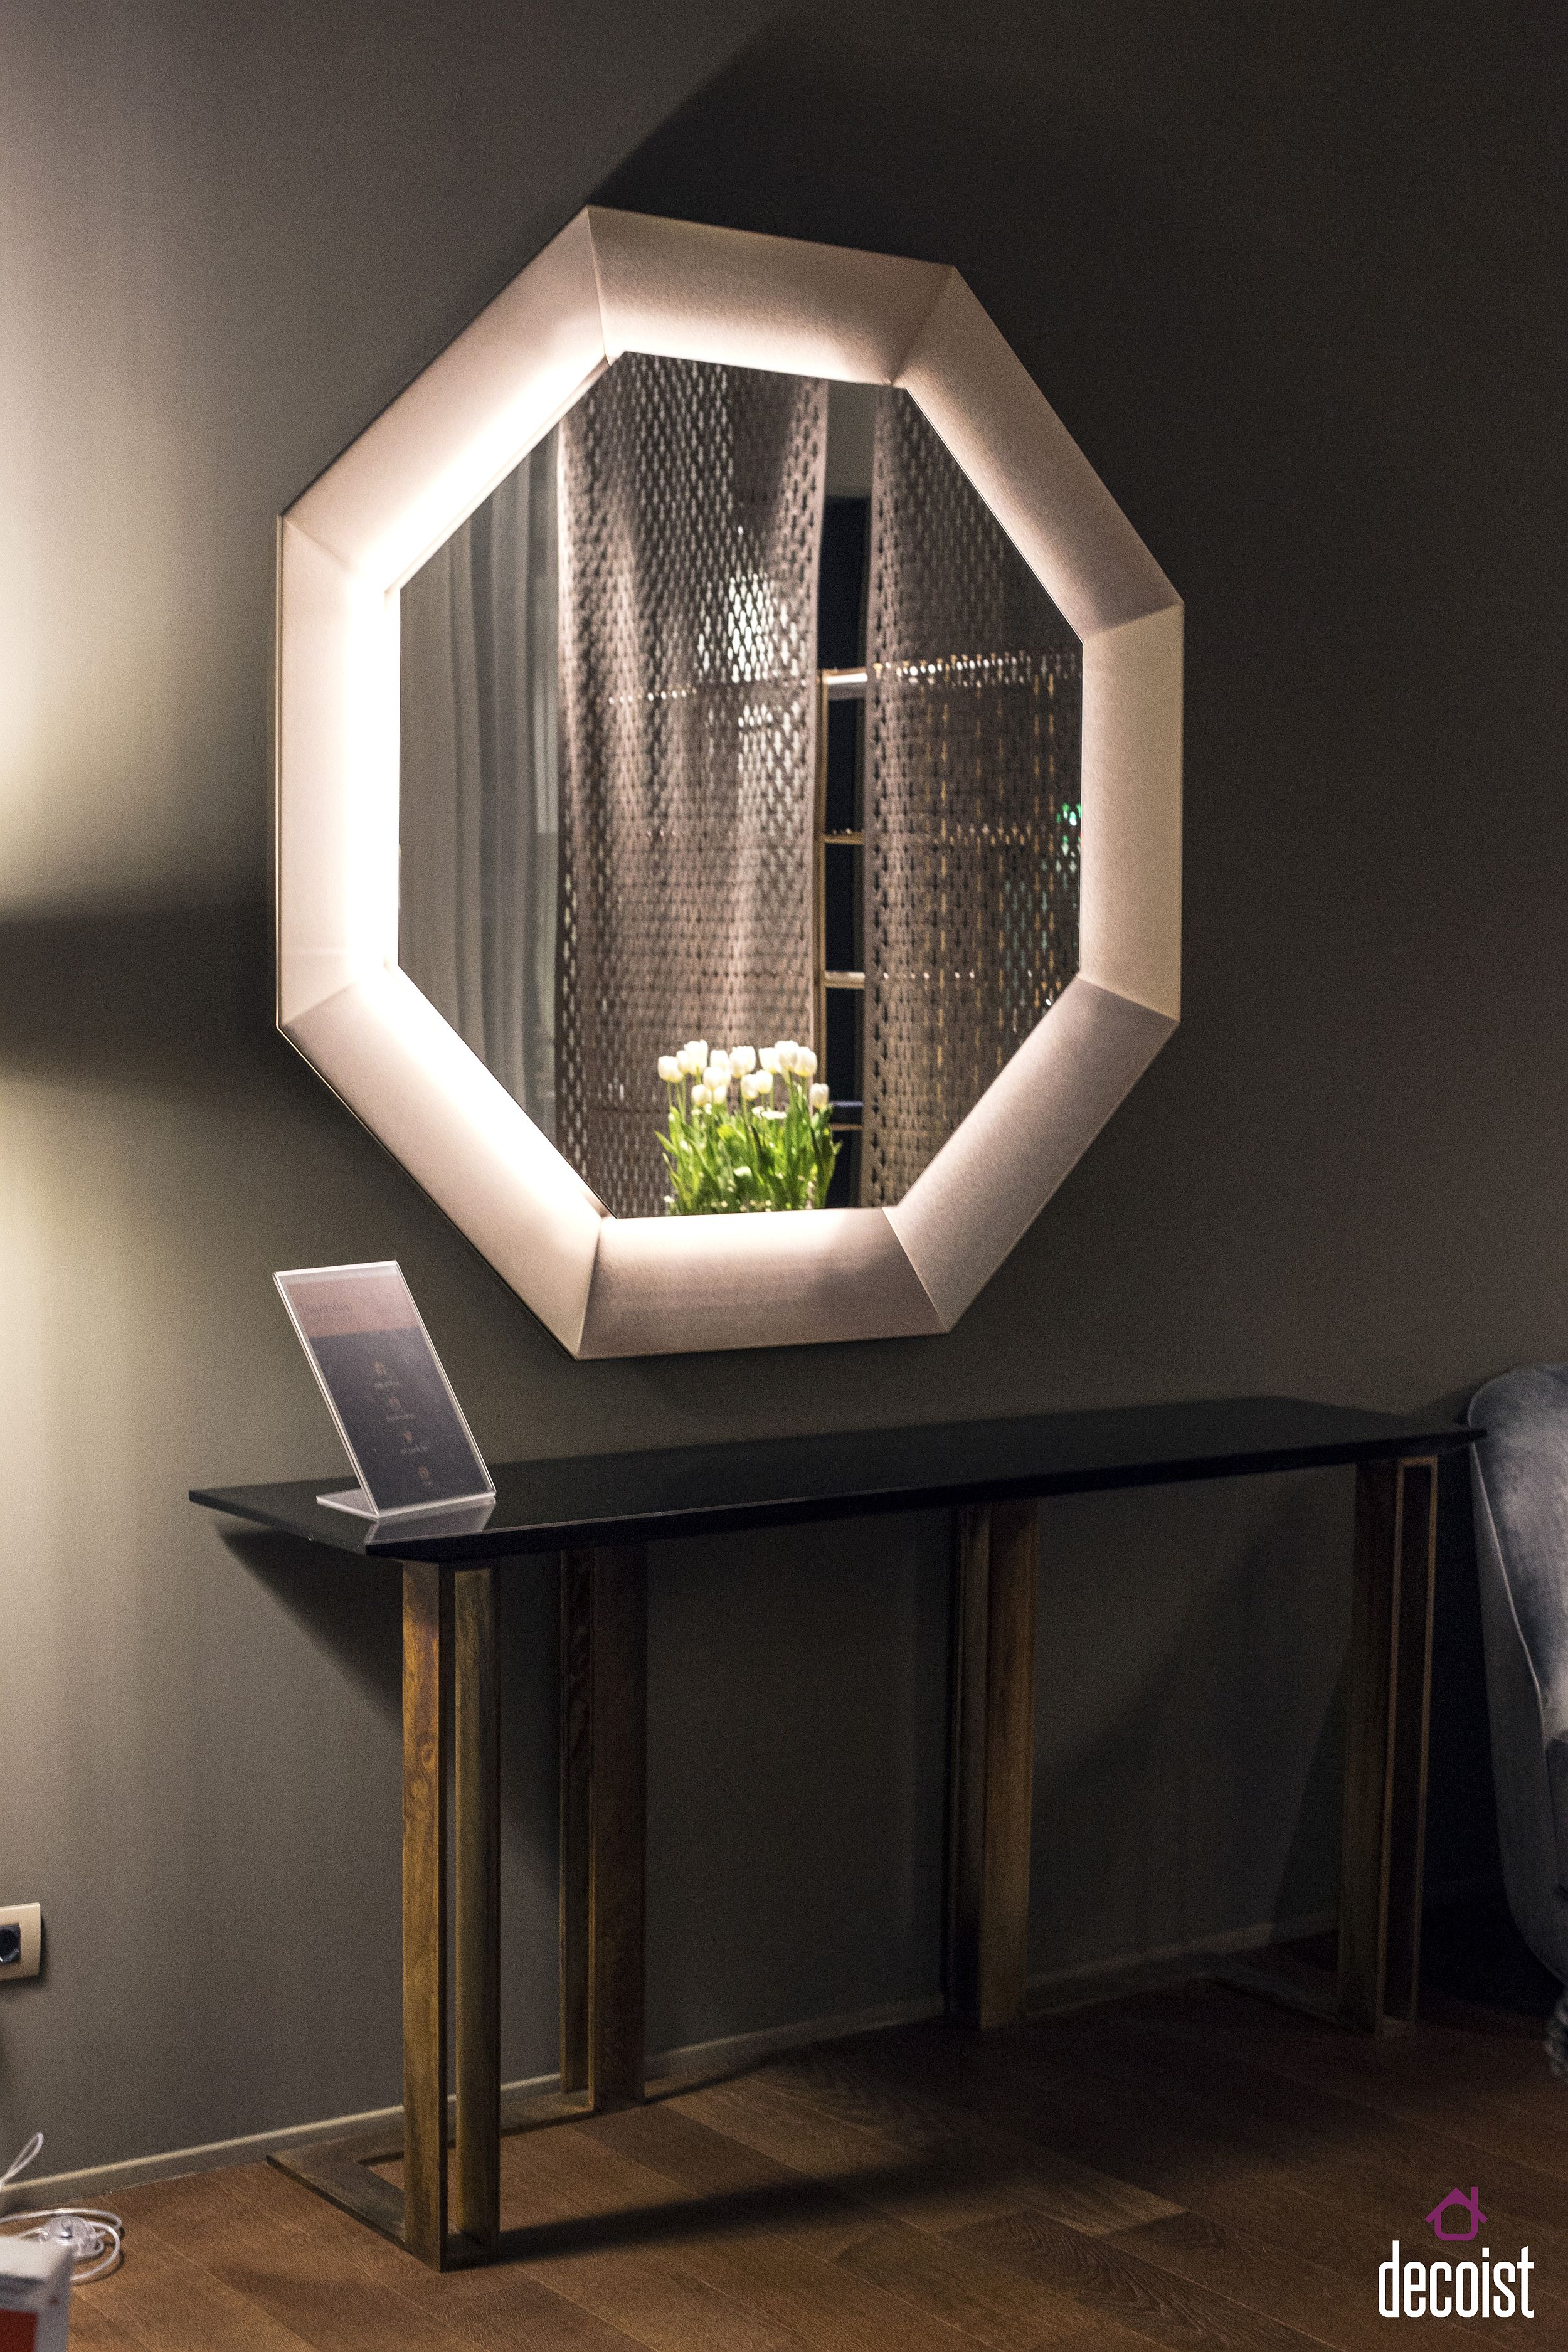 Octagonal-mirror-frame-is-a-showstopper-in-the-bathroom